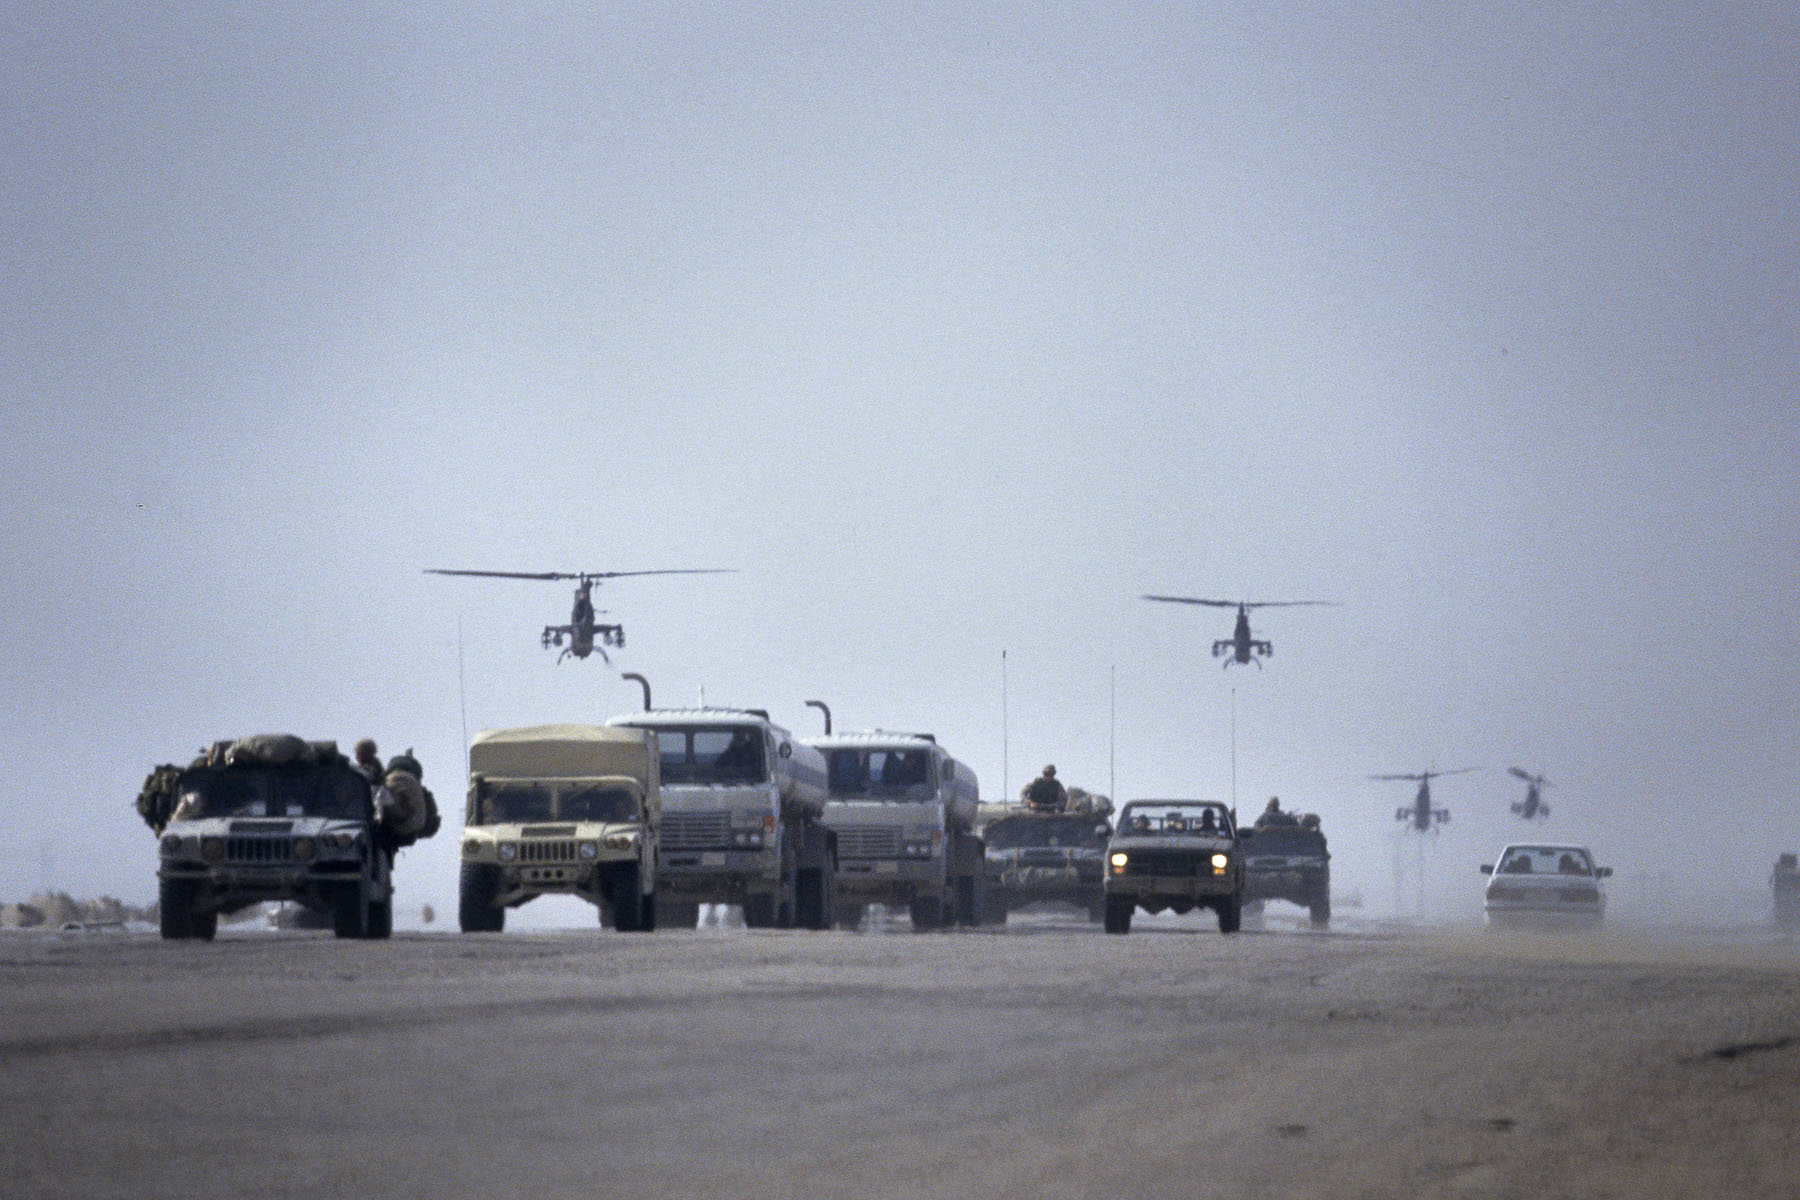 A column ofvehicles and helicopters of the U.S. Army on the road to Kuwait in February 1991